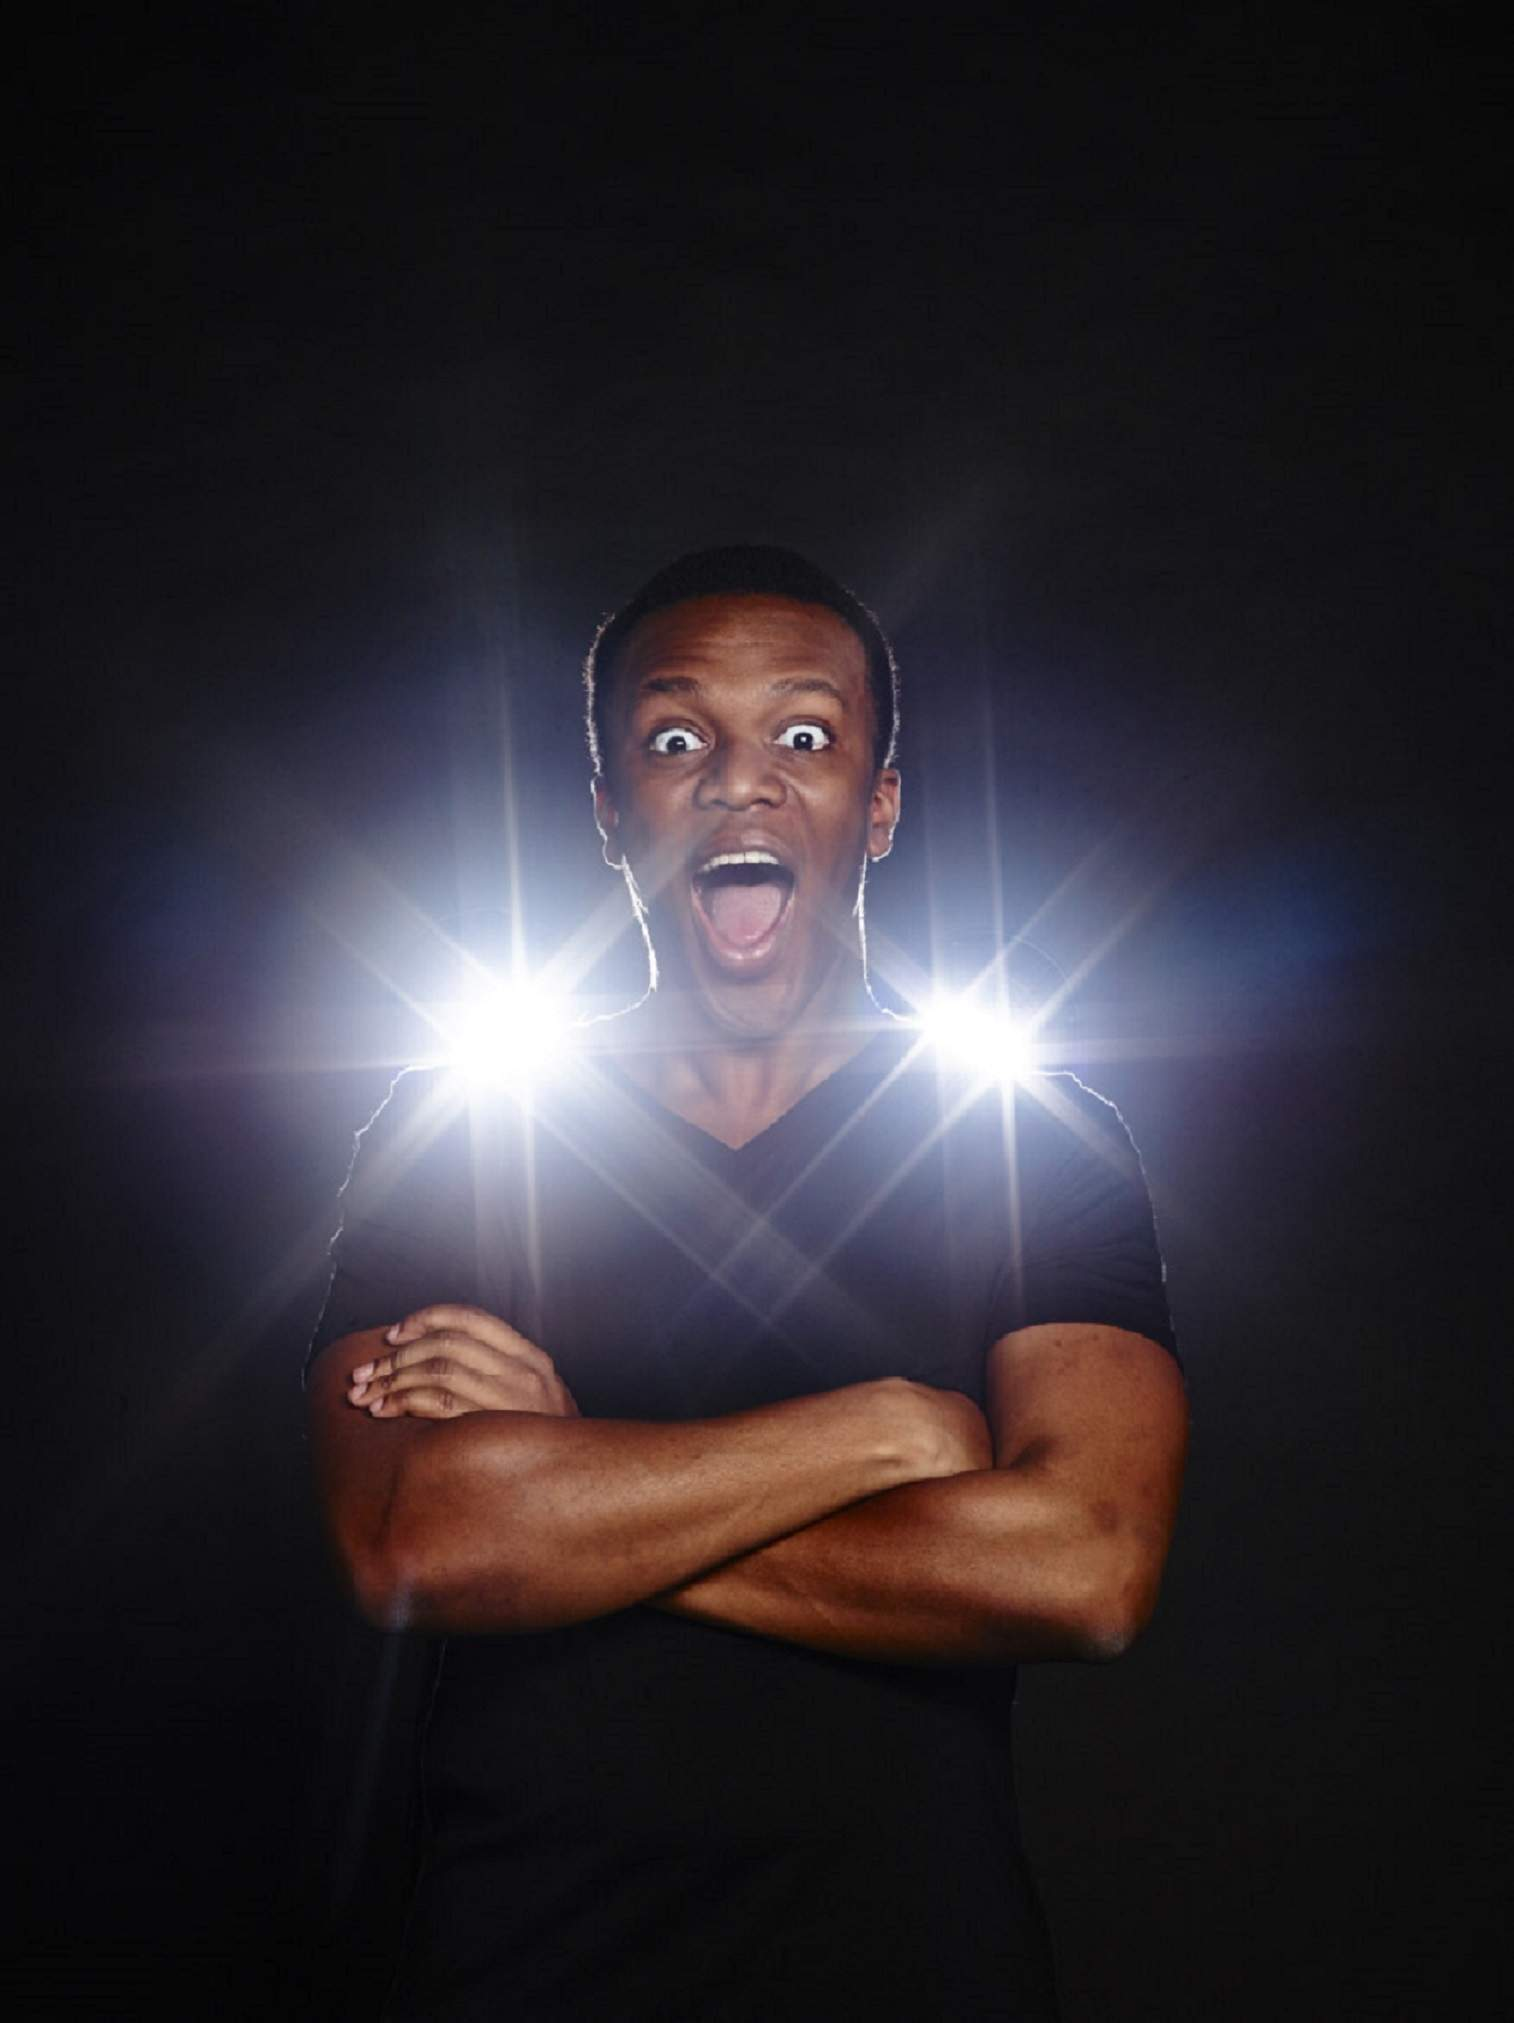 Why it's worth trying to understand KSI, YouTube's most controversial star